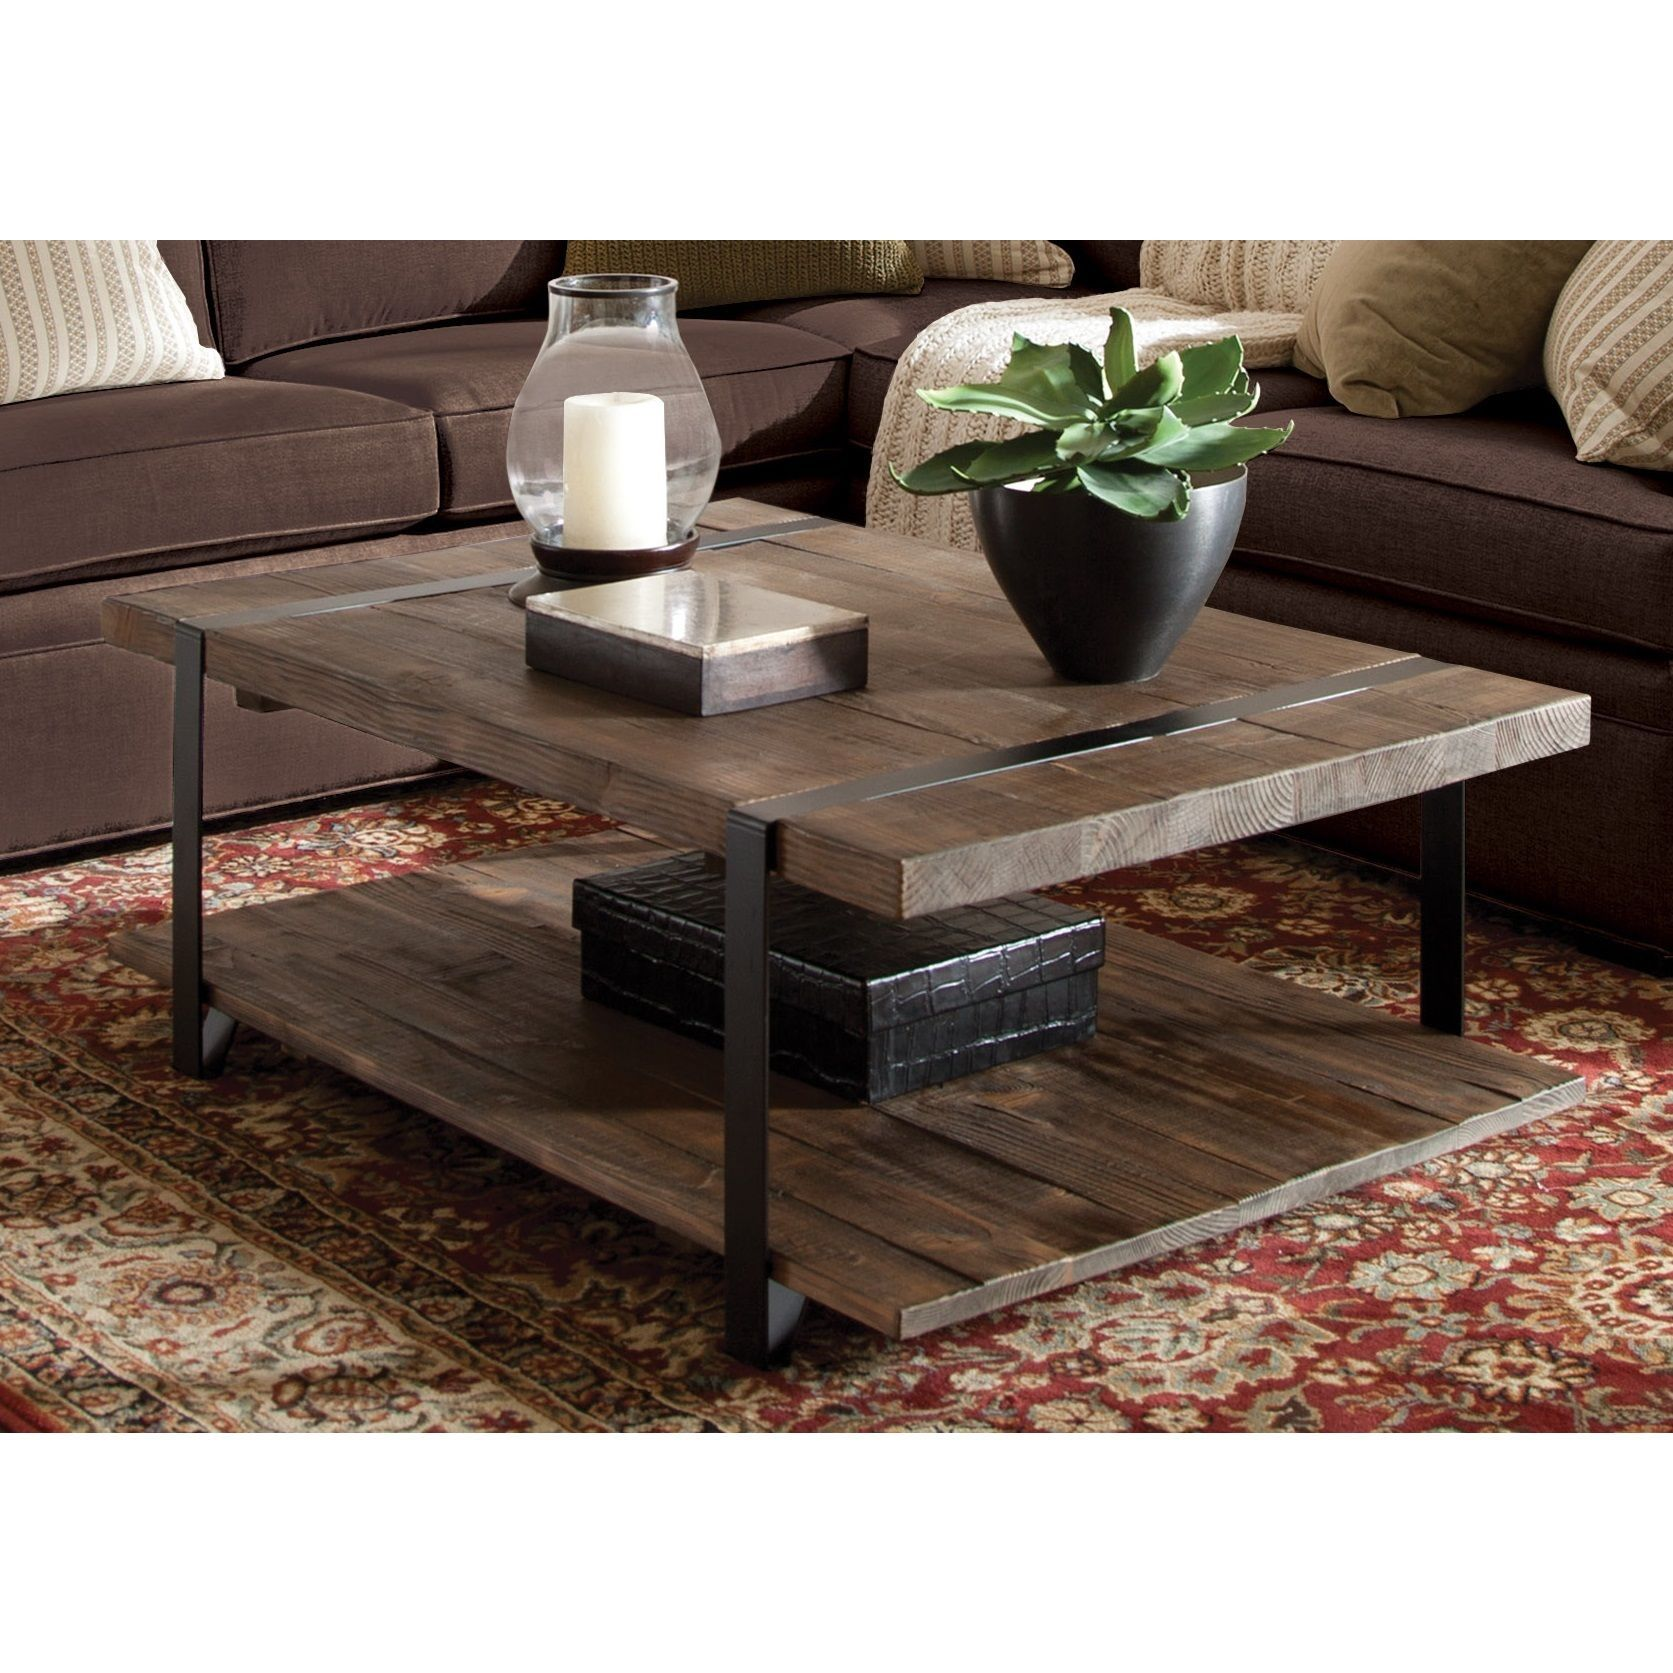 Make A Reclaimed Wood Coffee Table: Make+this+natural+reclaimed+wood+coffee+table+the